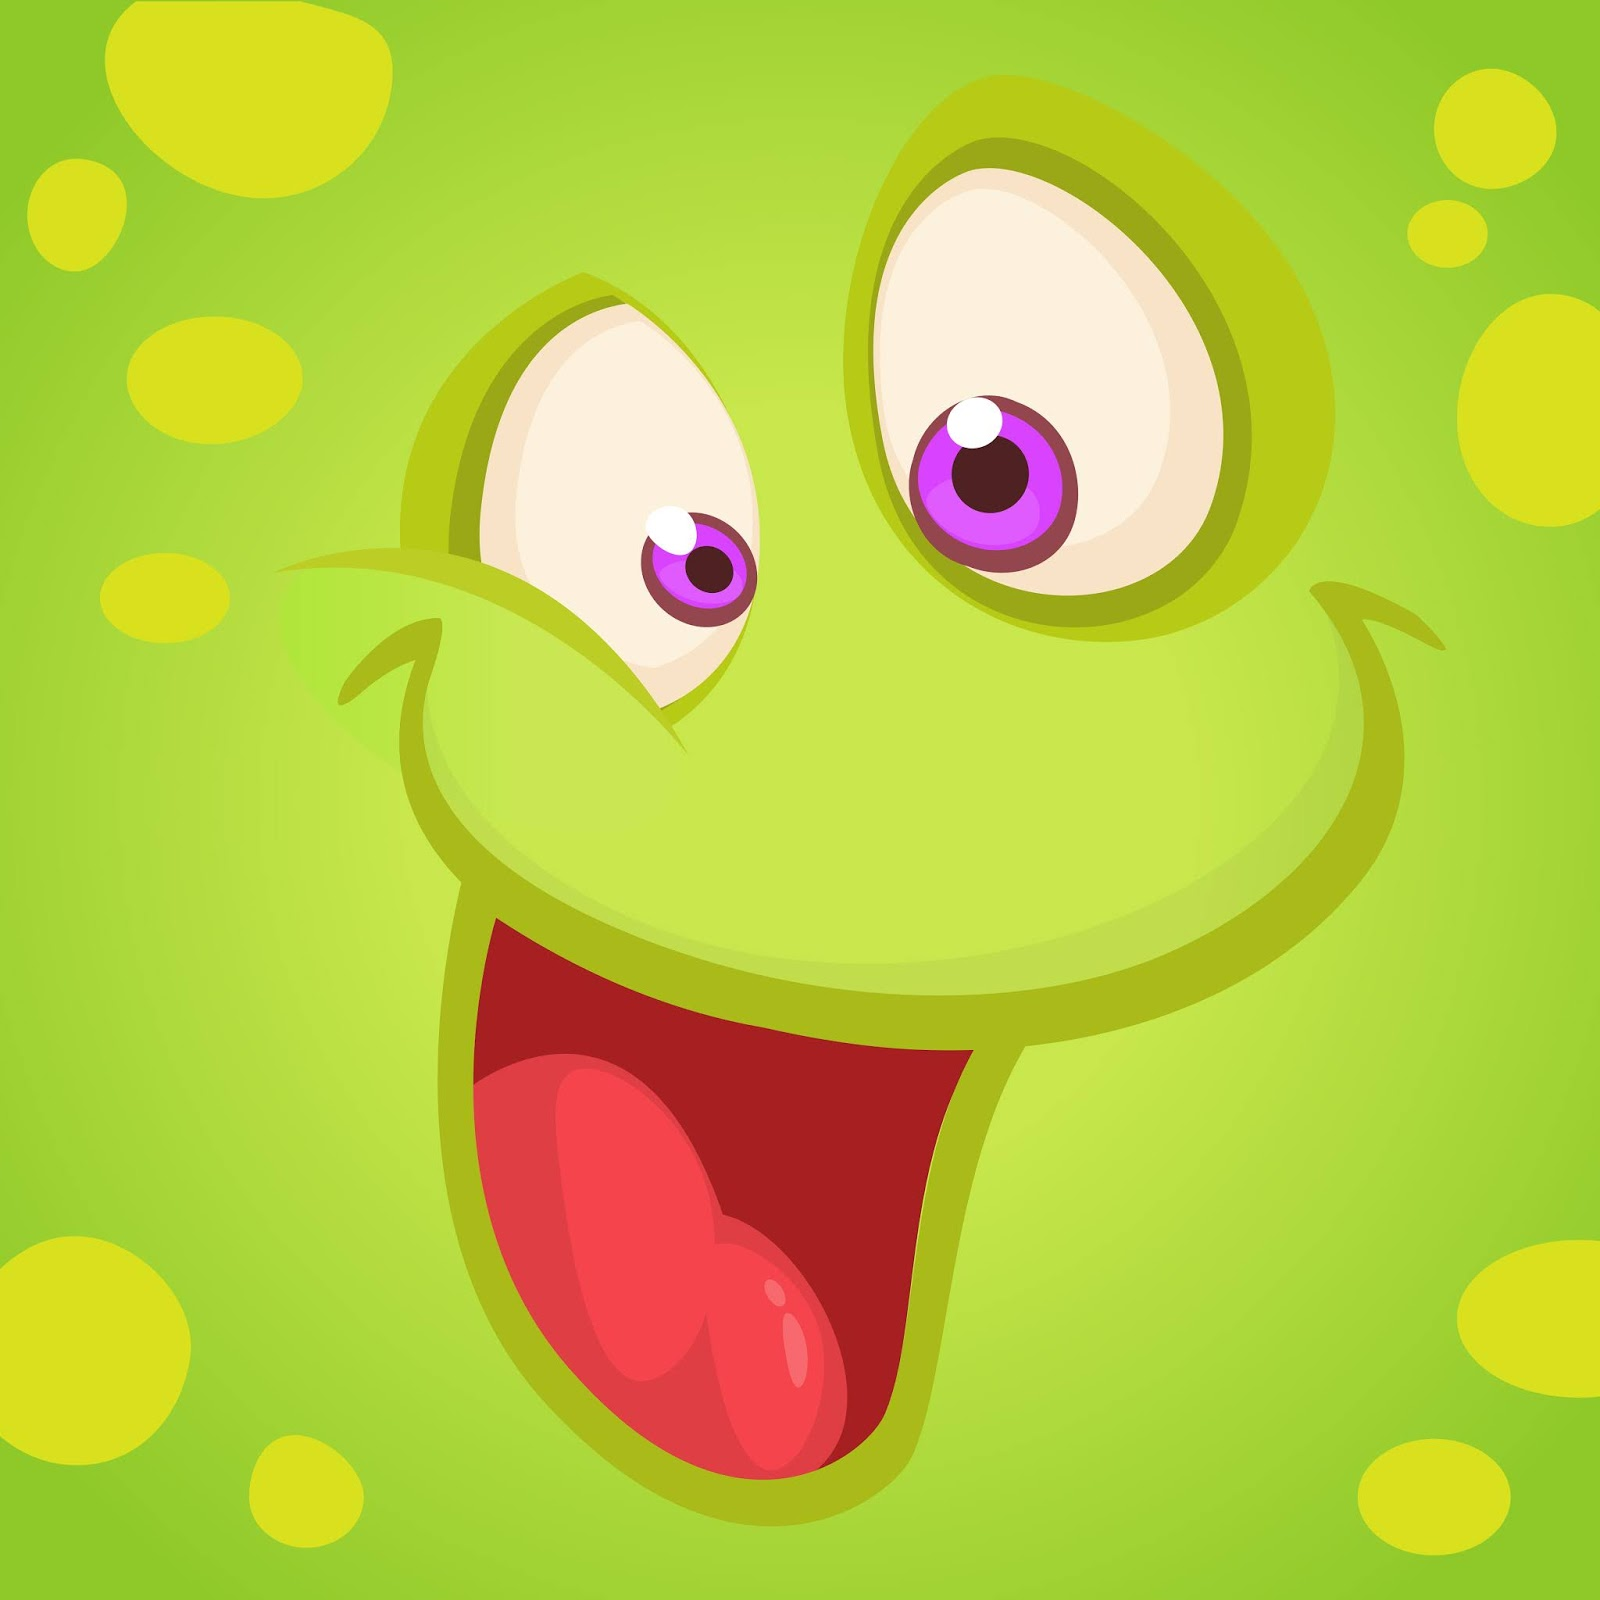 Monster Face Funny Free Download Vector CDR, AI, EPS and PNG Formats